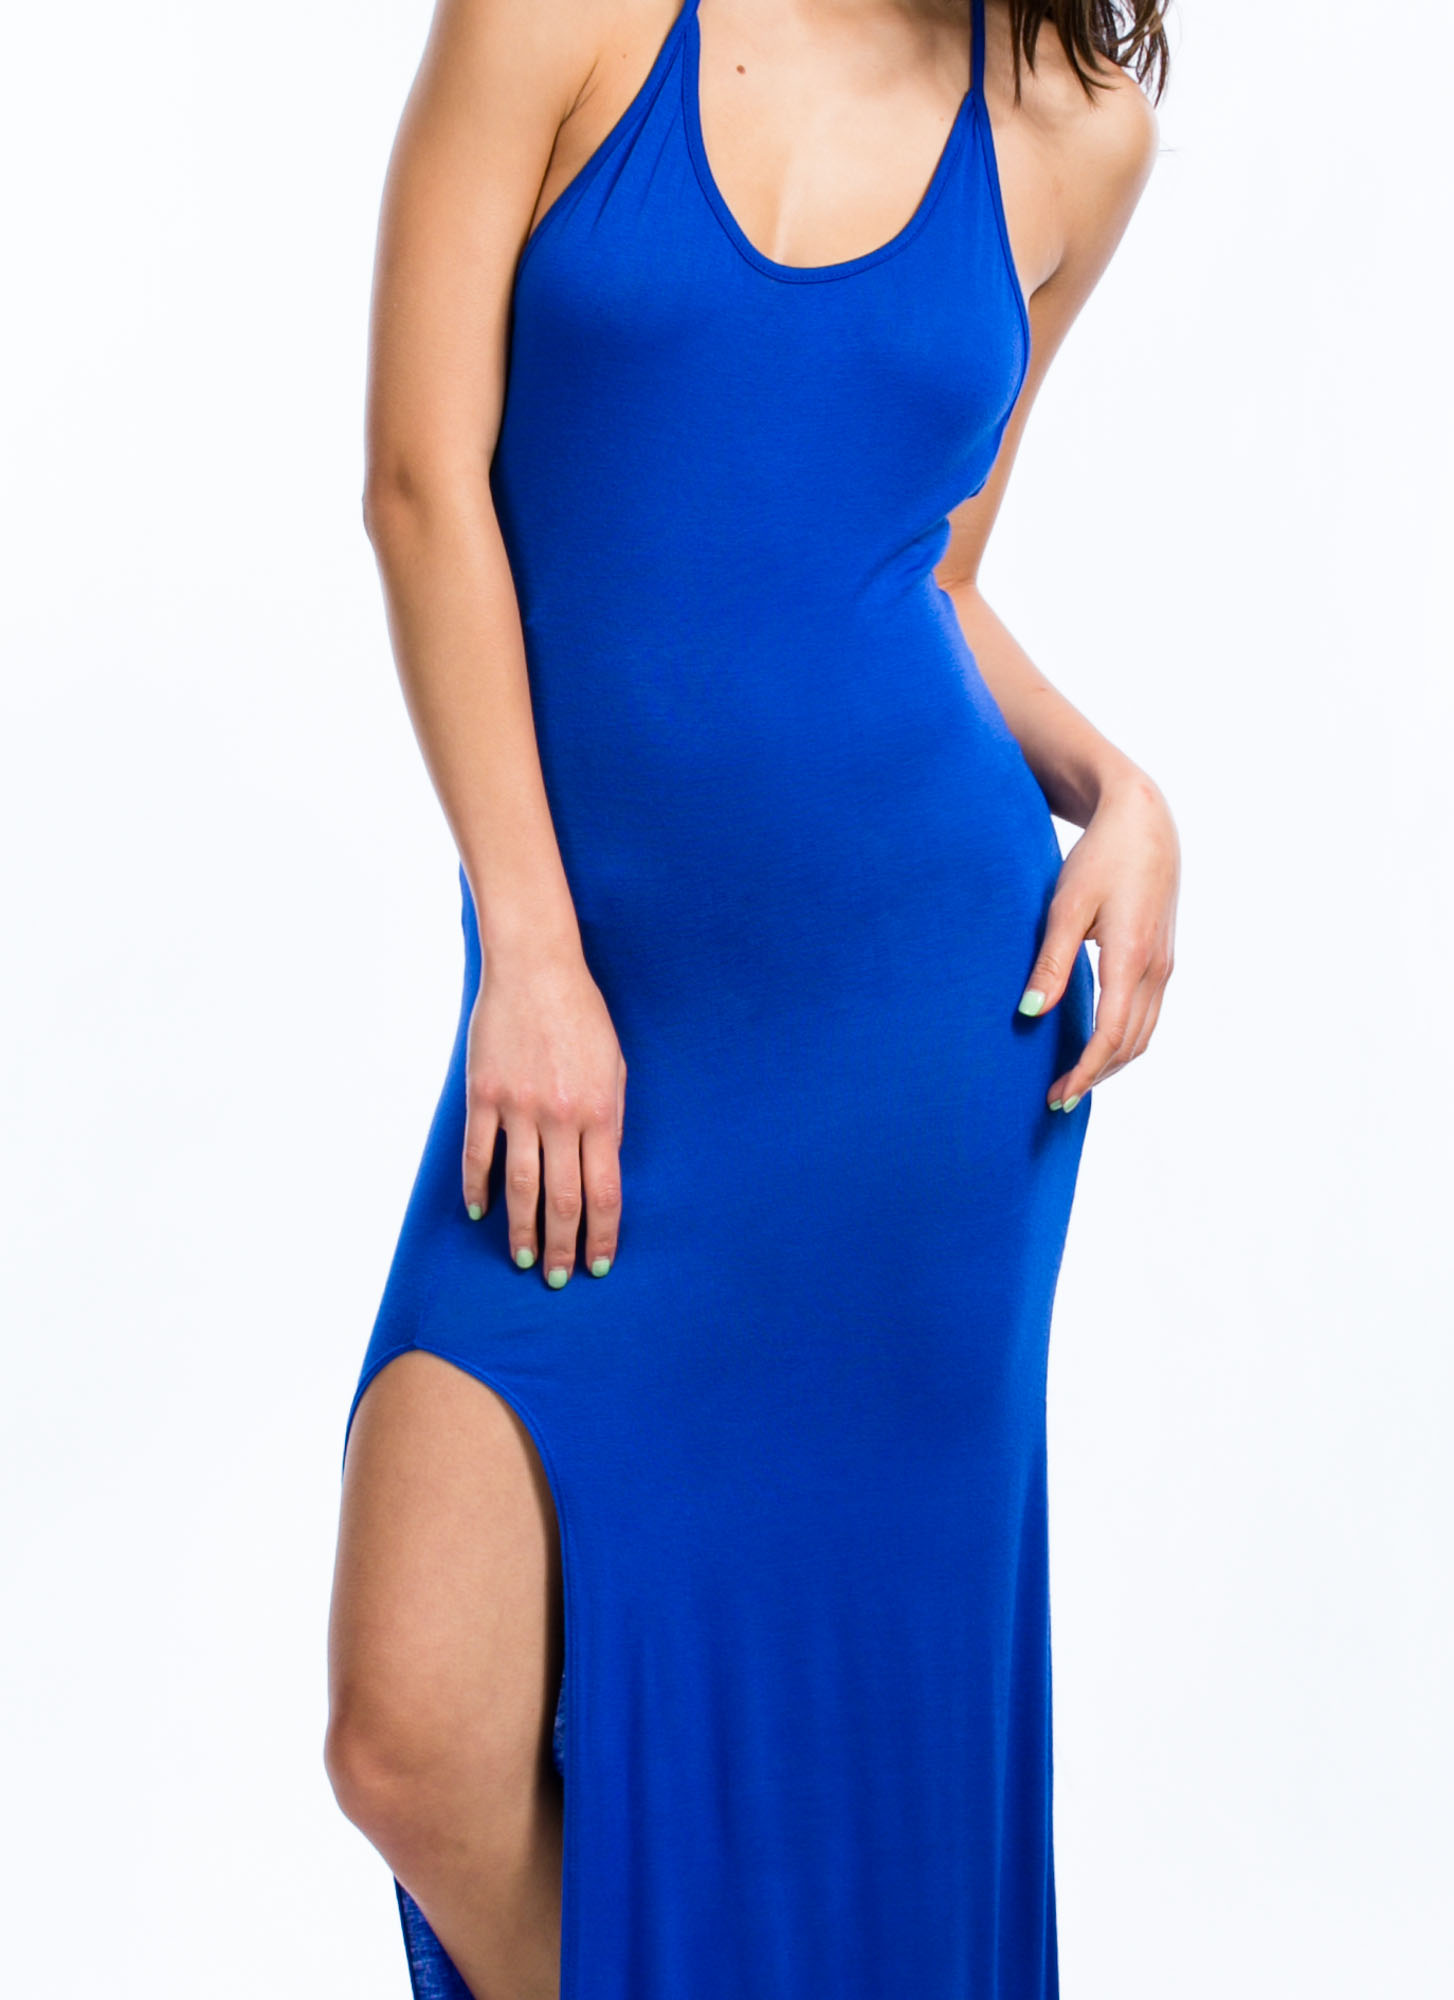 Will Beg 4 Leg Halter Maxi Dress ROYAL